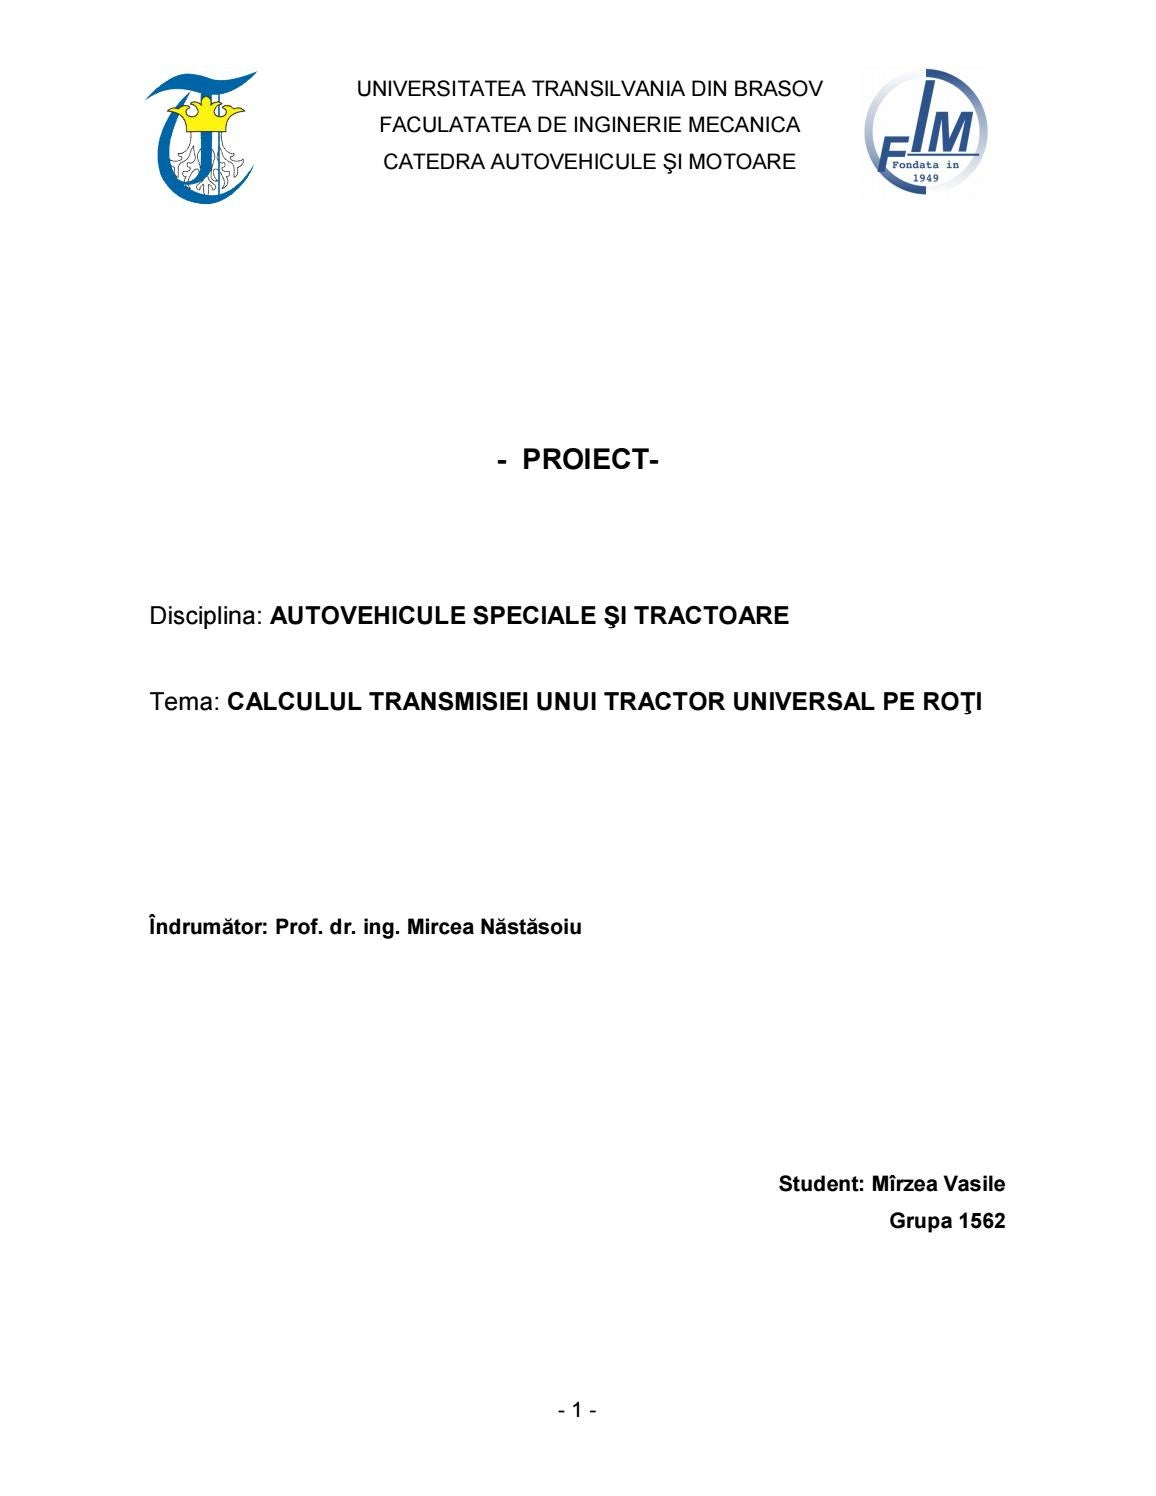 CALCULUL TRANSMISIEI UNUI TRACTOR UNIVERSAL PE RO?I by